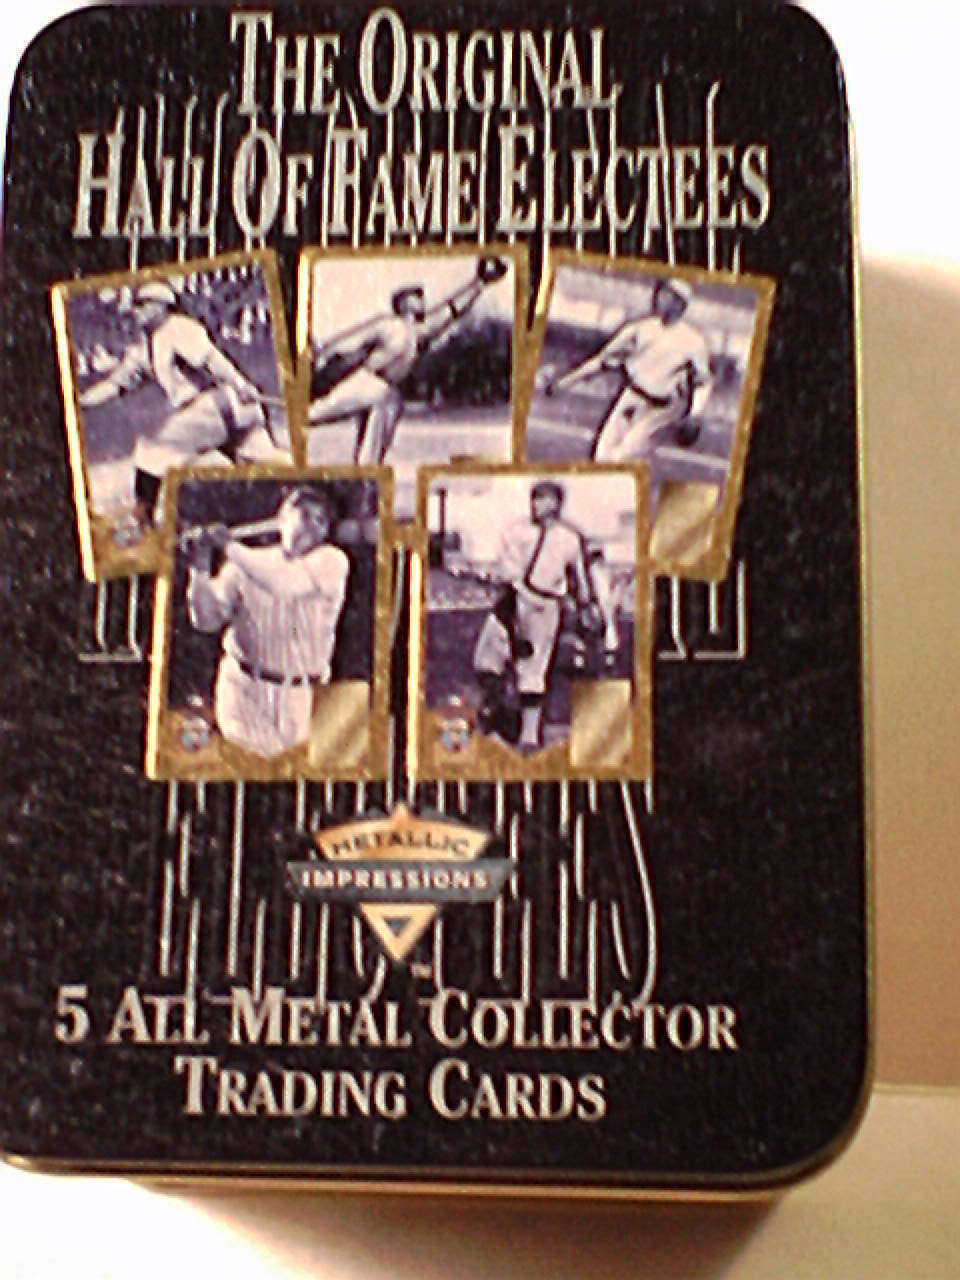 Hall of Fame Baseball  collector Metal  Baseball cards   by Avon